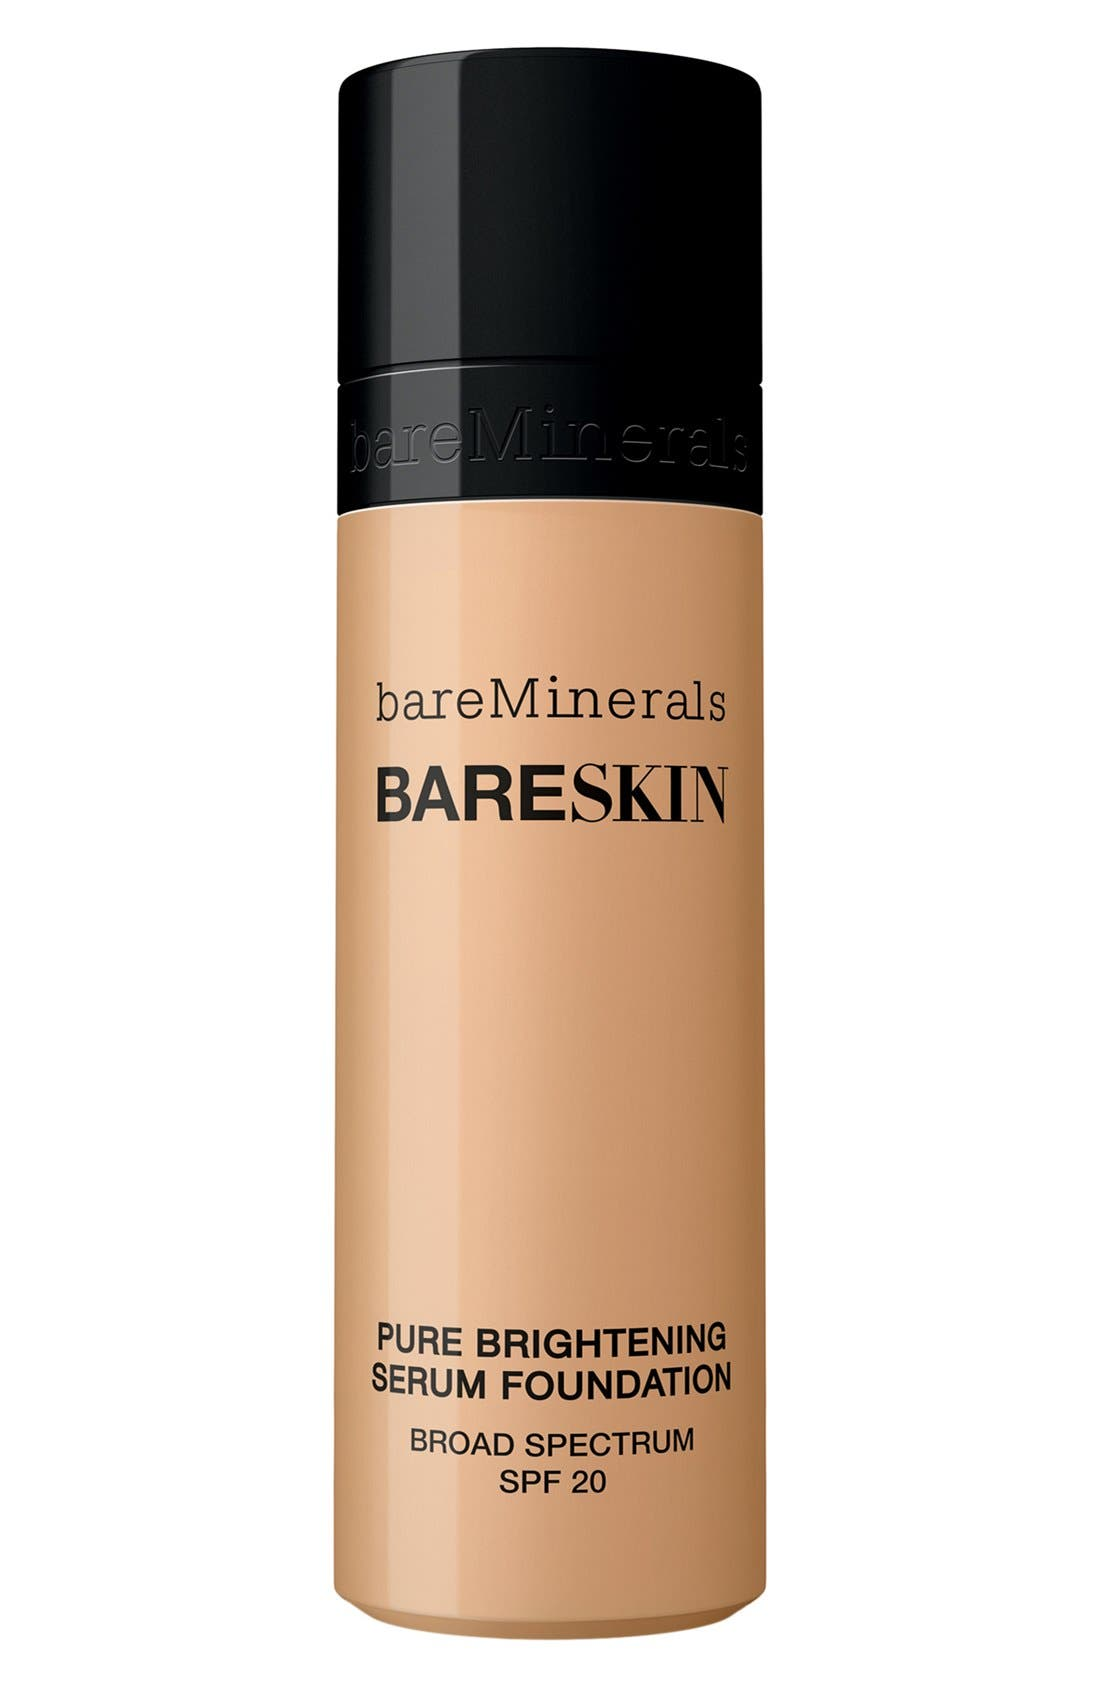 bareMinerals® bareSkin® Pure Brightening Serum Foundation Broad Spectrum SPF 20